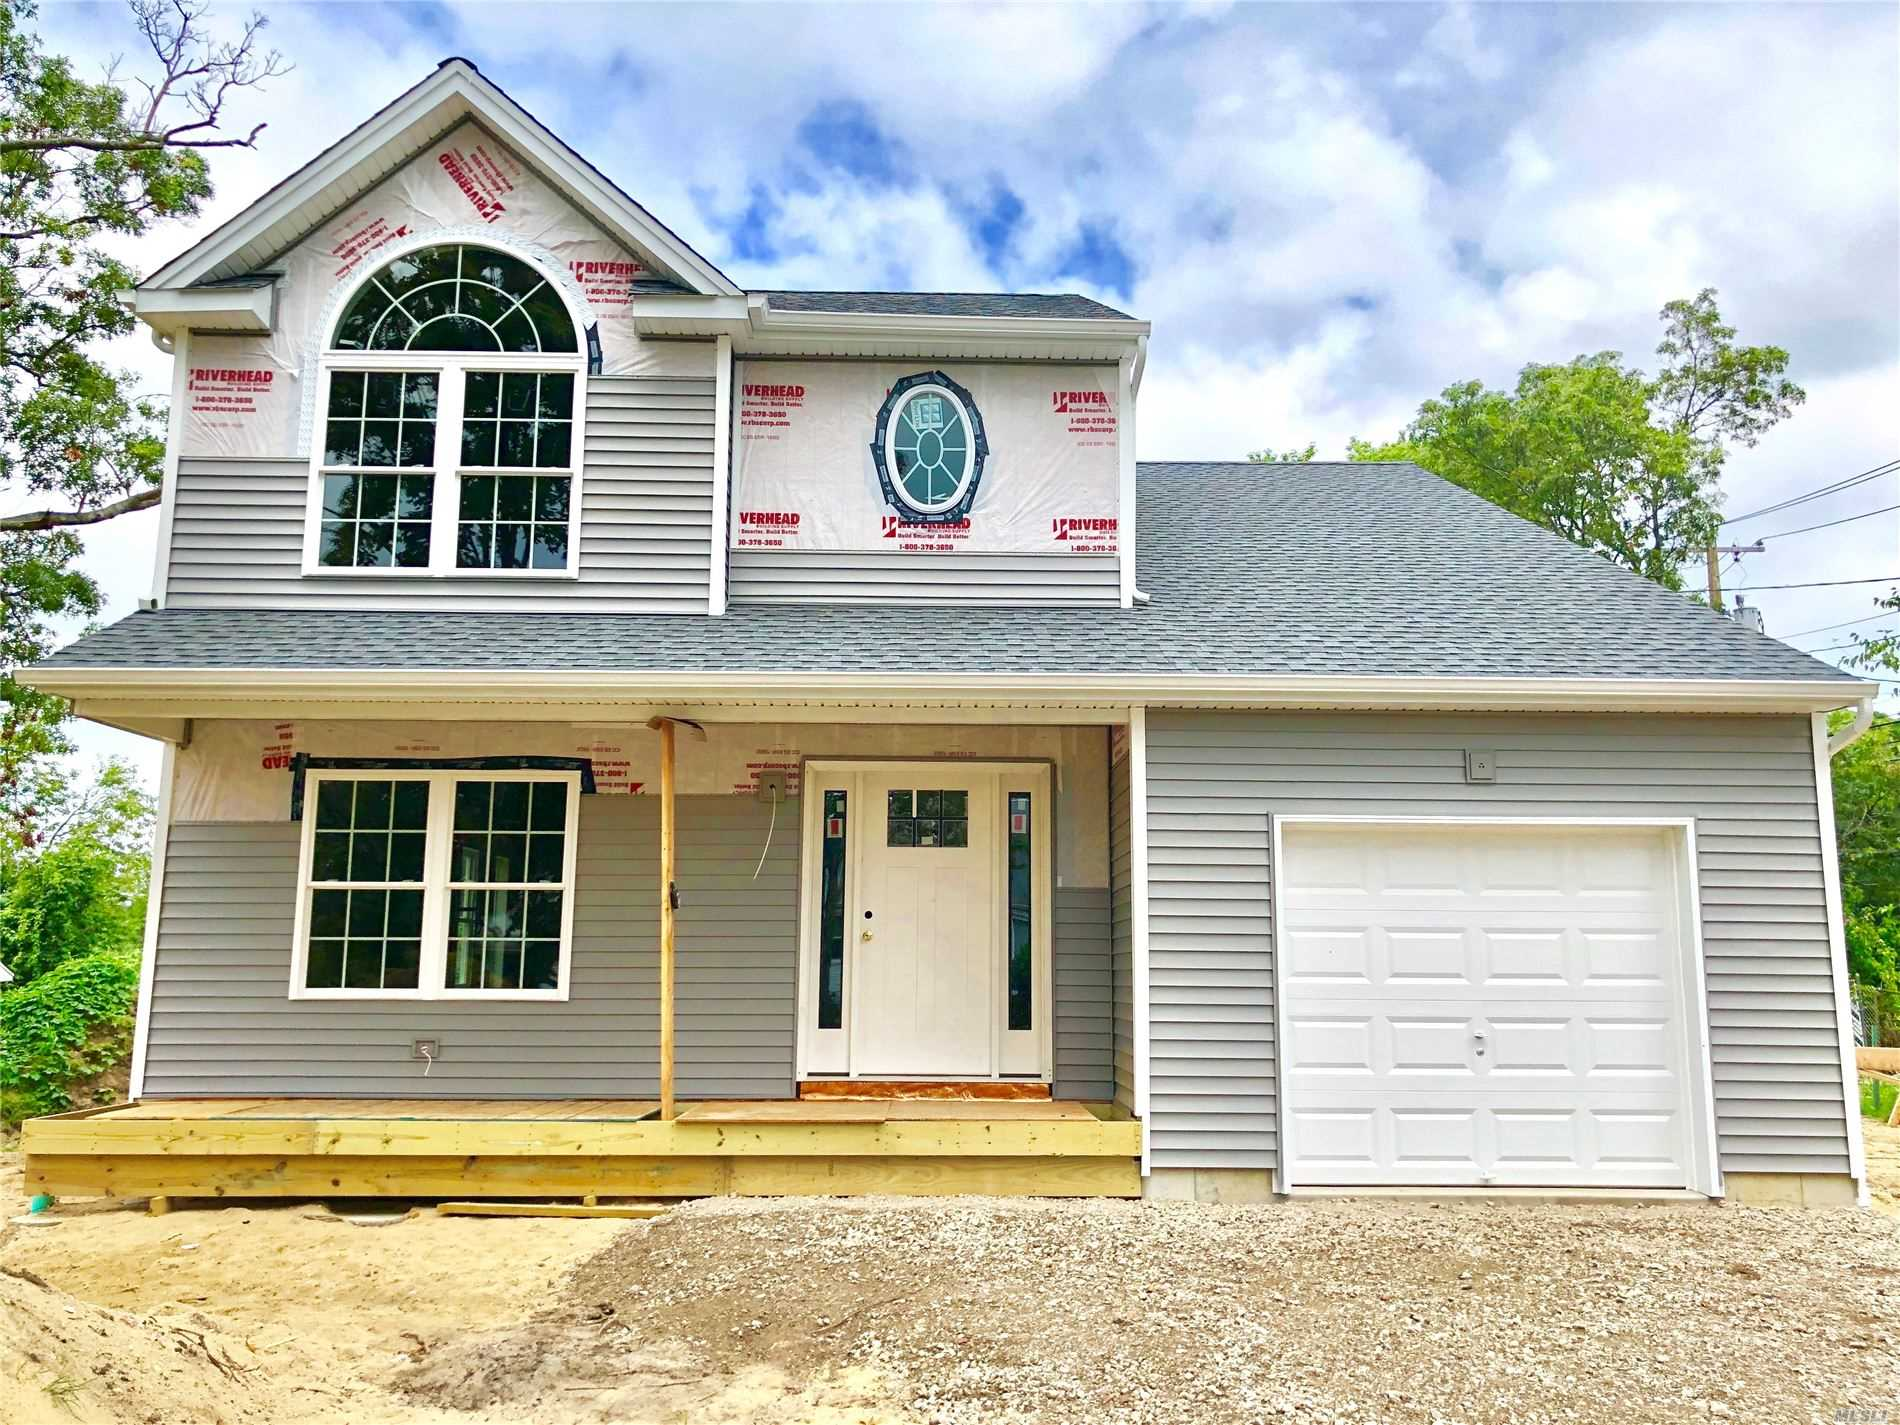 Still Time to Customize Your Dream Home. Choice of Granite and Cabinets in Kitchen, Hardwood Floors, 2 Zone Central Air & Oil Hot Water Heat, Master Suite, Plus 3 Bedrooms, Choice Of Carpet Color in Bedrooms, 8 Ft Ceilings in Basement with Outside Entrance, Corner Lot